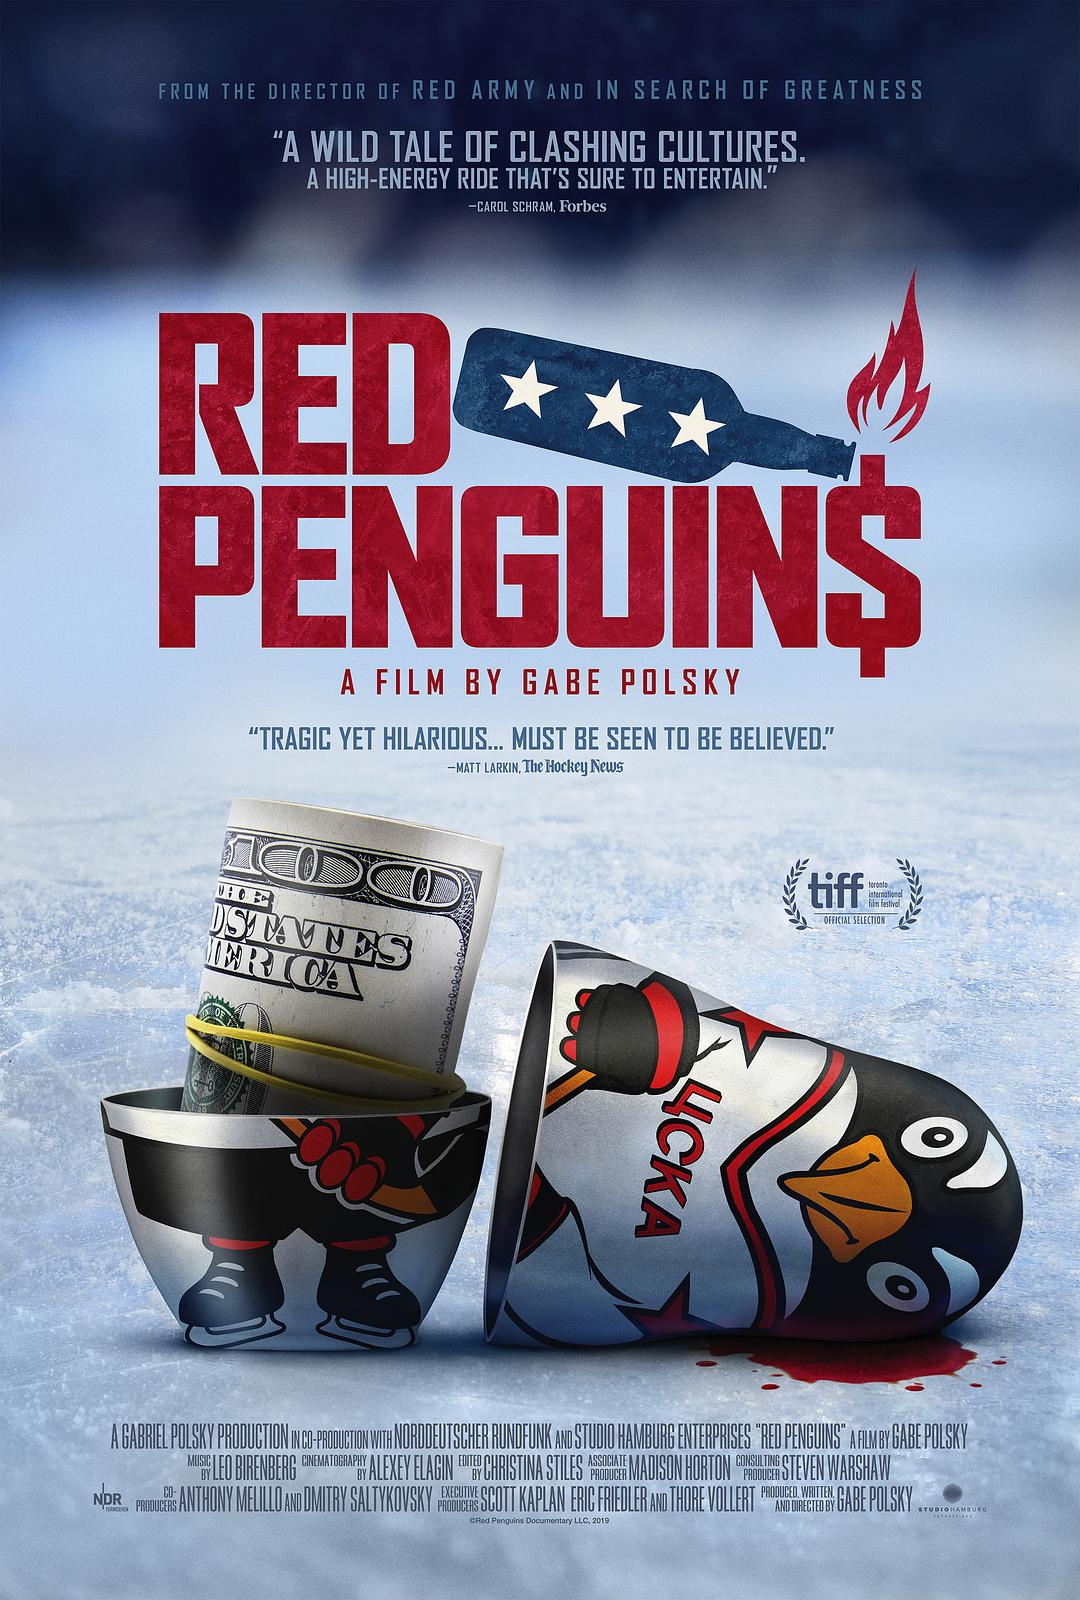 悠悠MP4_MP4电影下载_红企鹅/红军无敌 Red.Penguins.2019.720p.AMZN.WEBRip.DDP5.1.x264-NTG 3.17GB